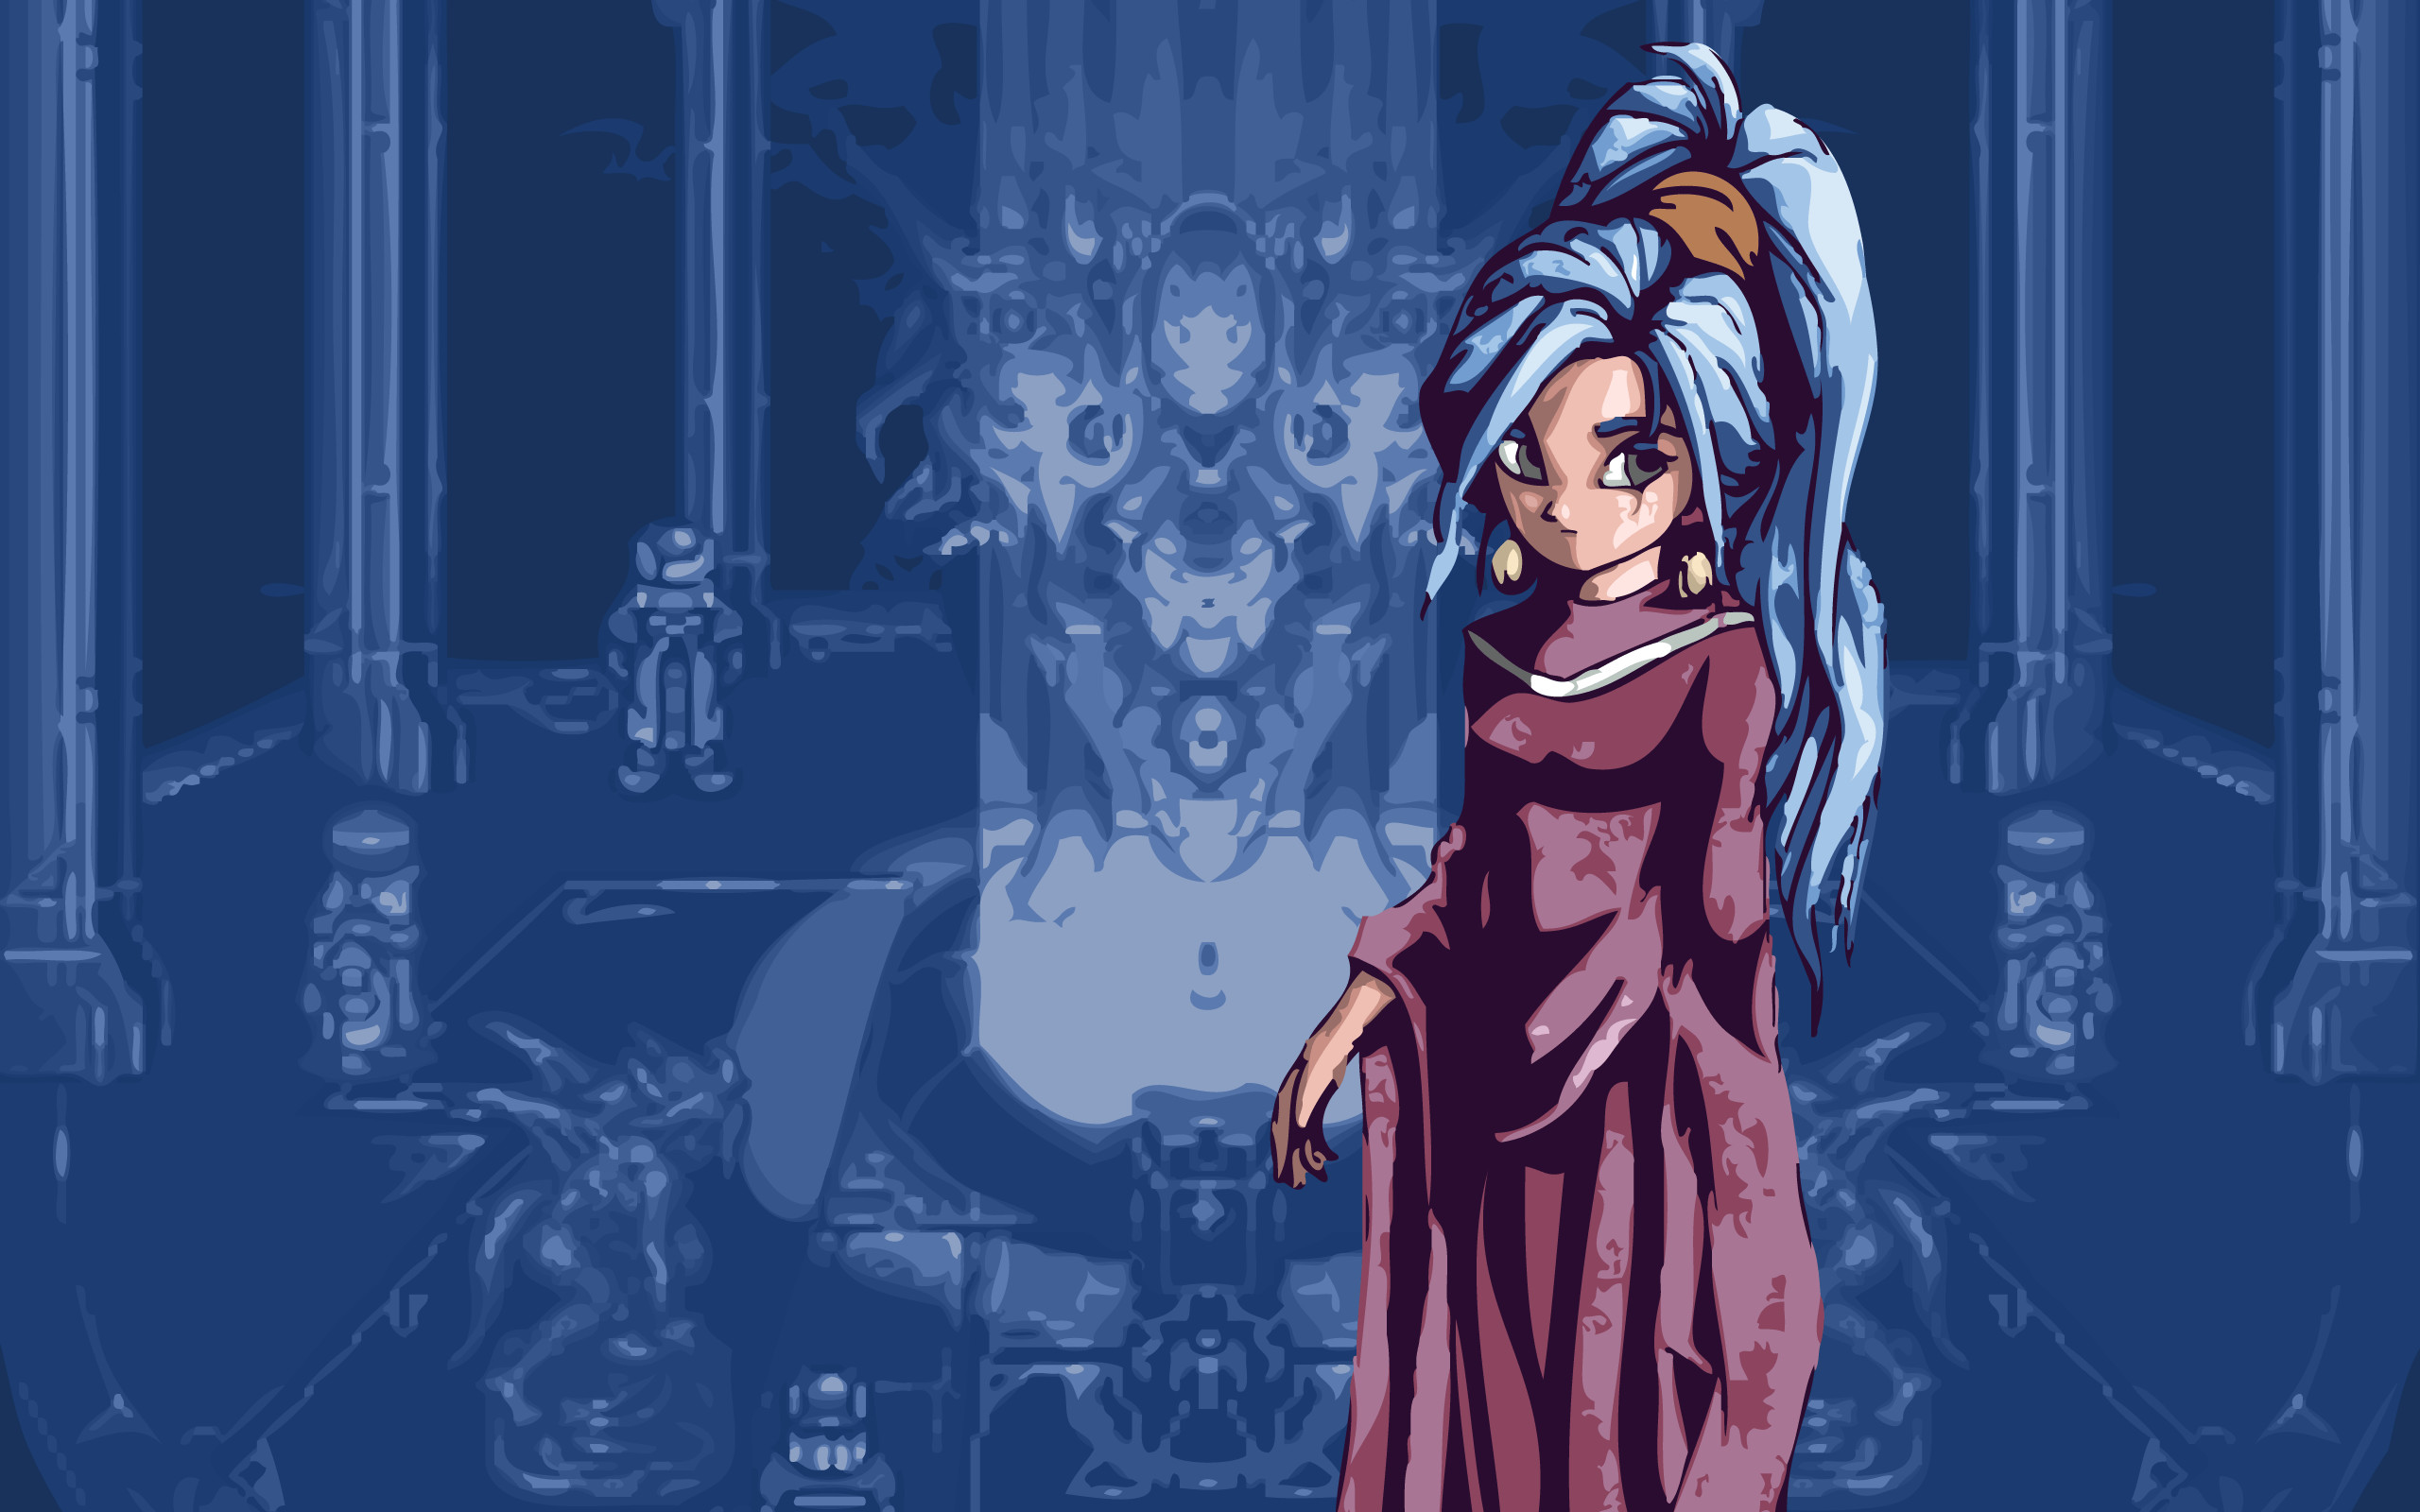 Adorable HDQ Backgrounds of Chrono Trigger, 2560×1600